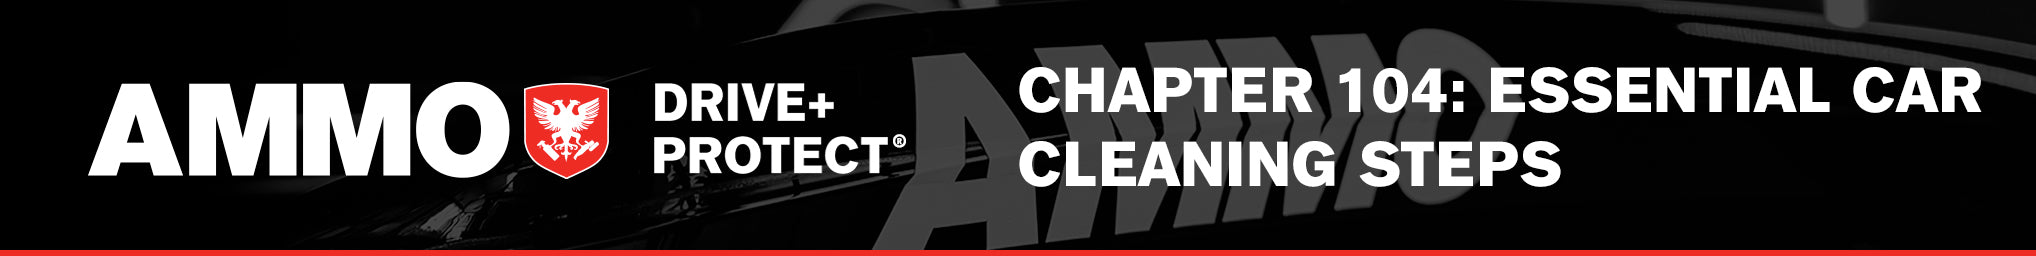 CHAPTER 104: ESSENTIAL CAR CLEANING STEPS